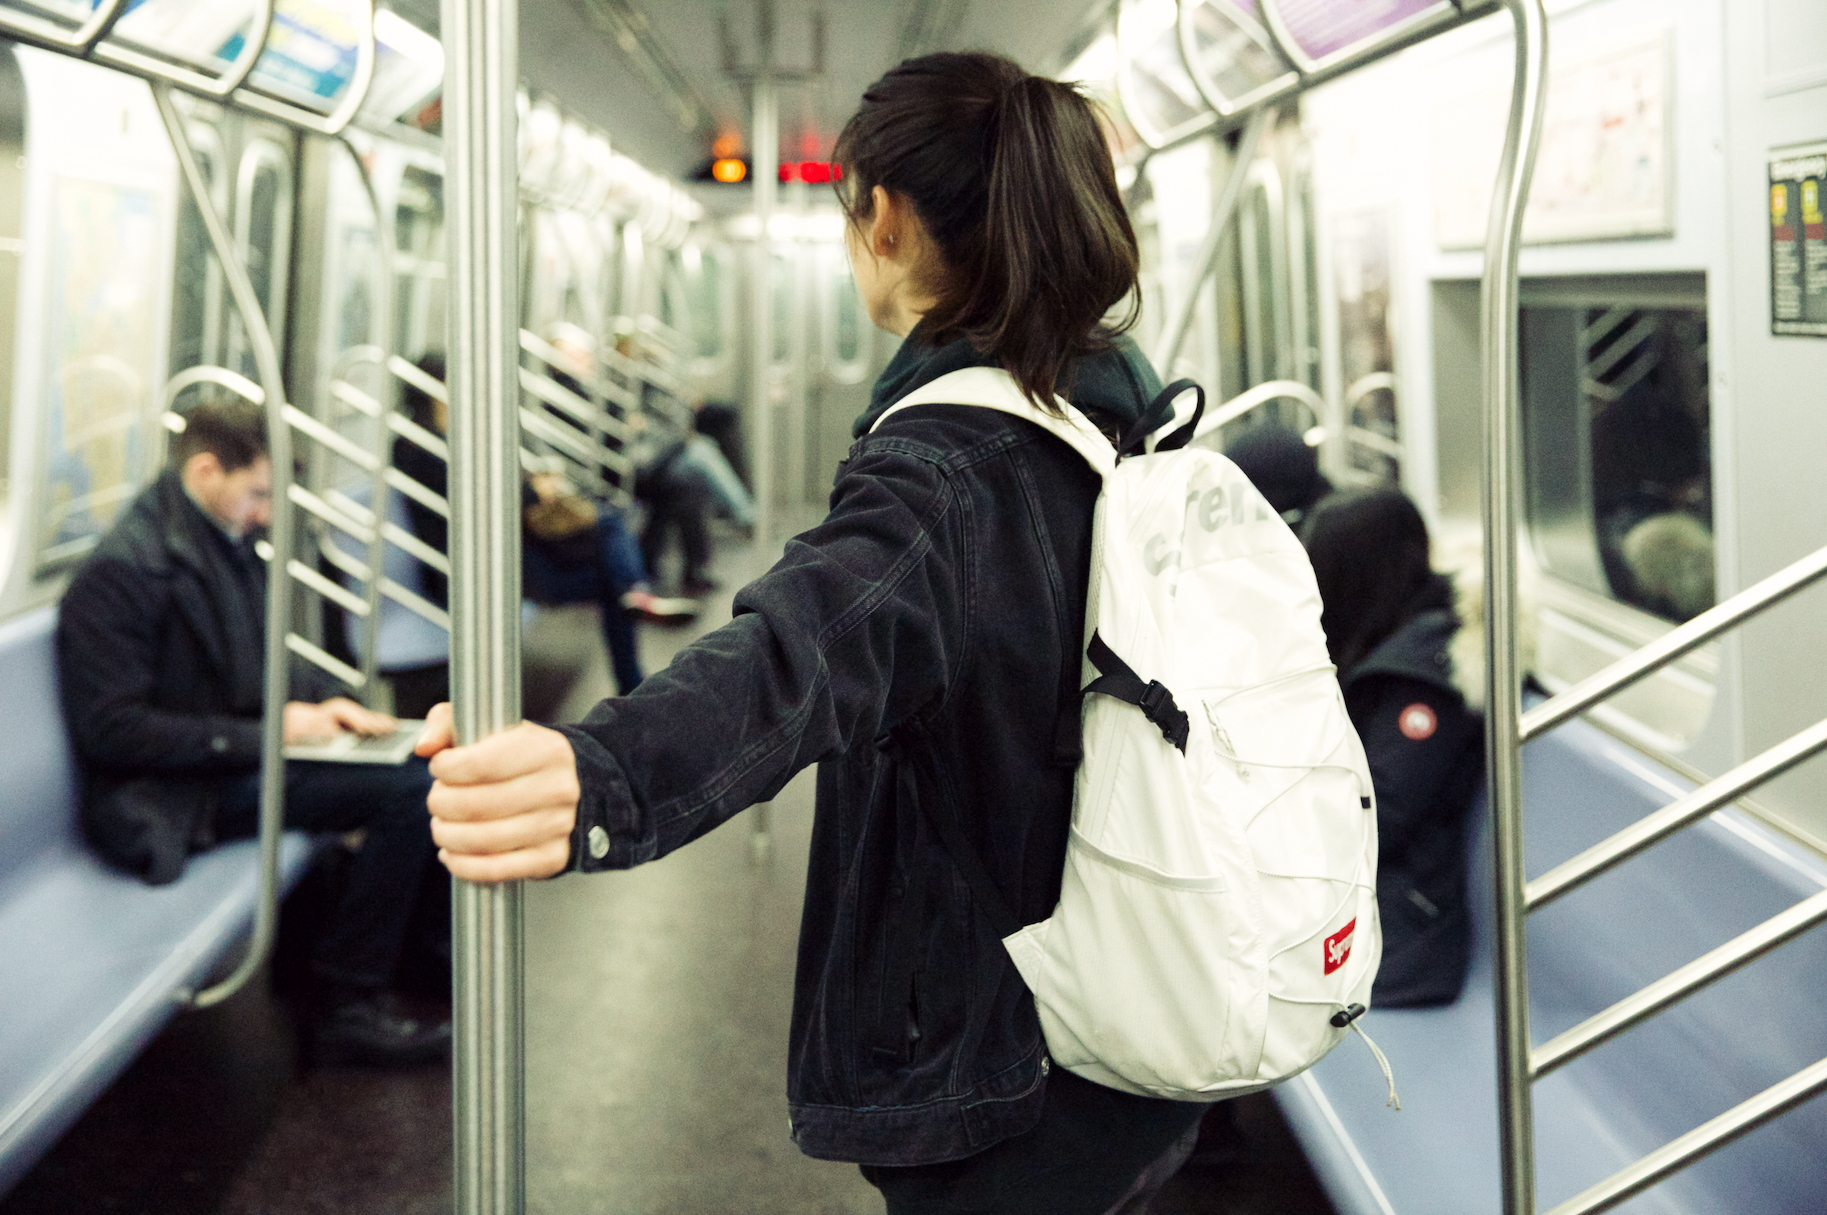 6-Cassie-Lavo-On-The-Subway.jpg